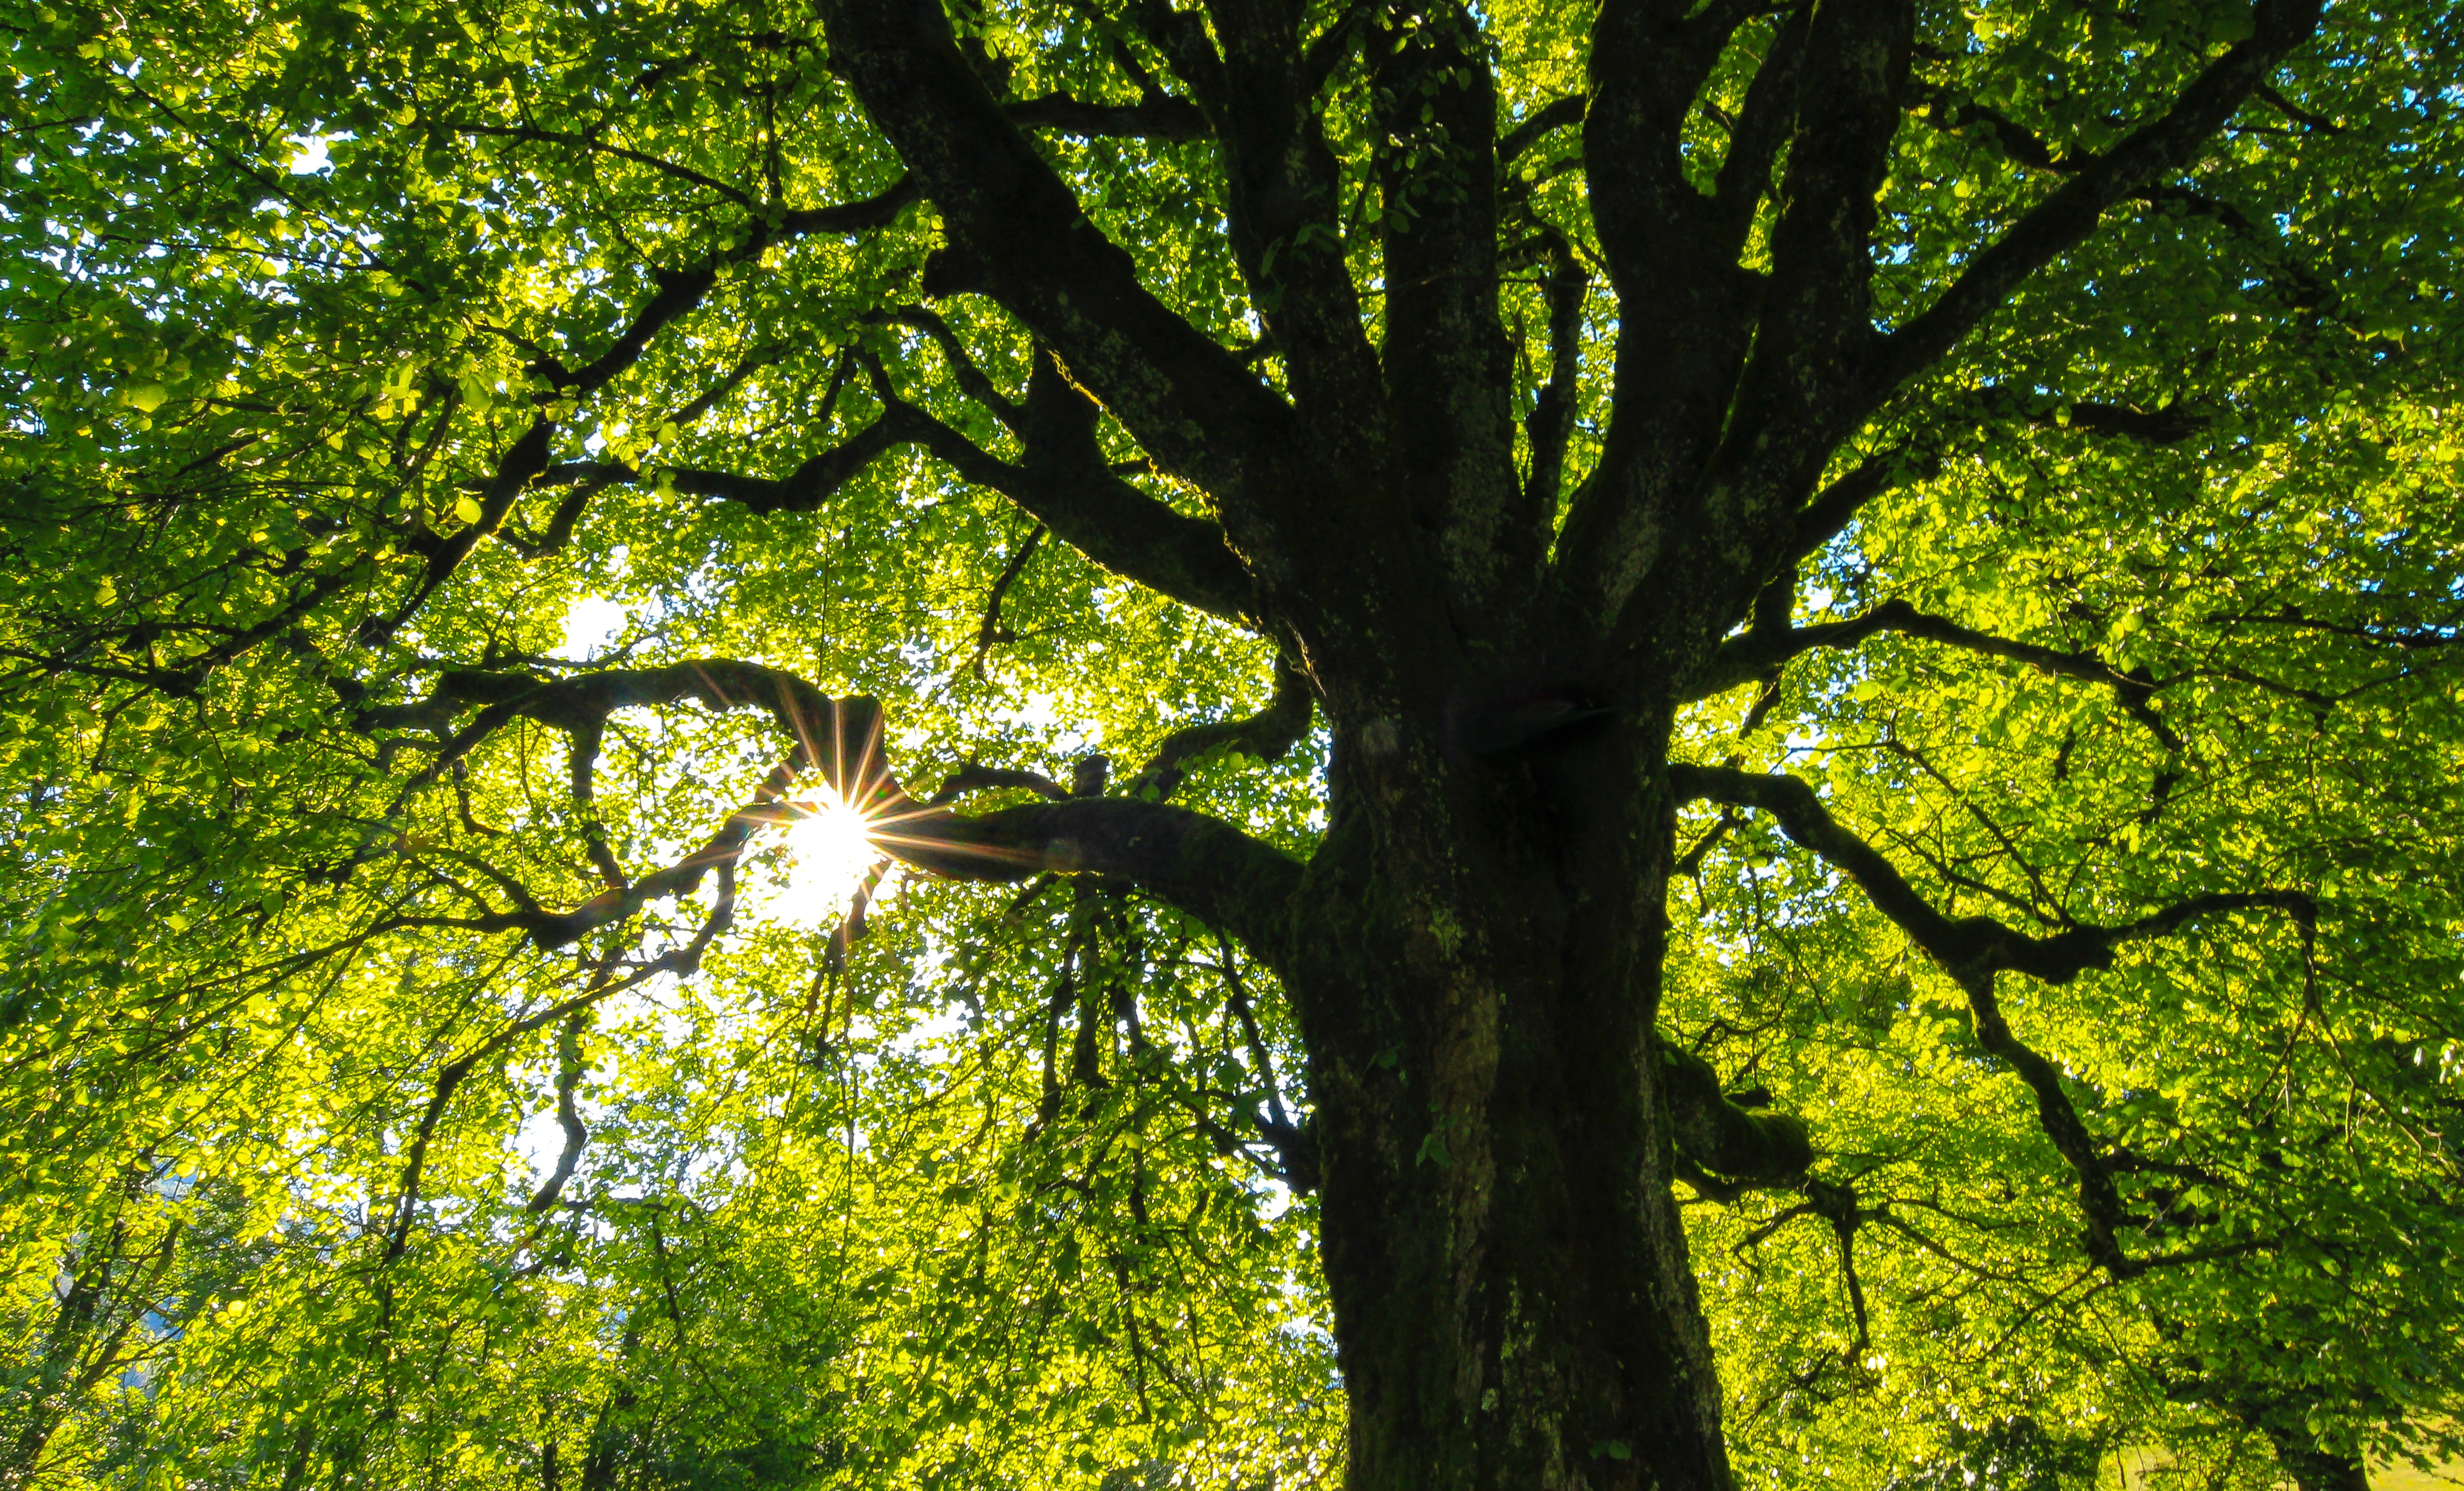 Only God Can Make A Tree The Catholic Behind The Famous Arbor Day Poem America Magazine (sometimes when you don't know something can't. only god can make a tree the catholic